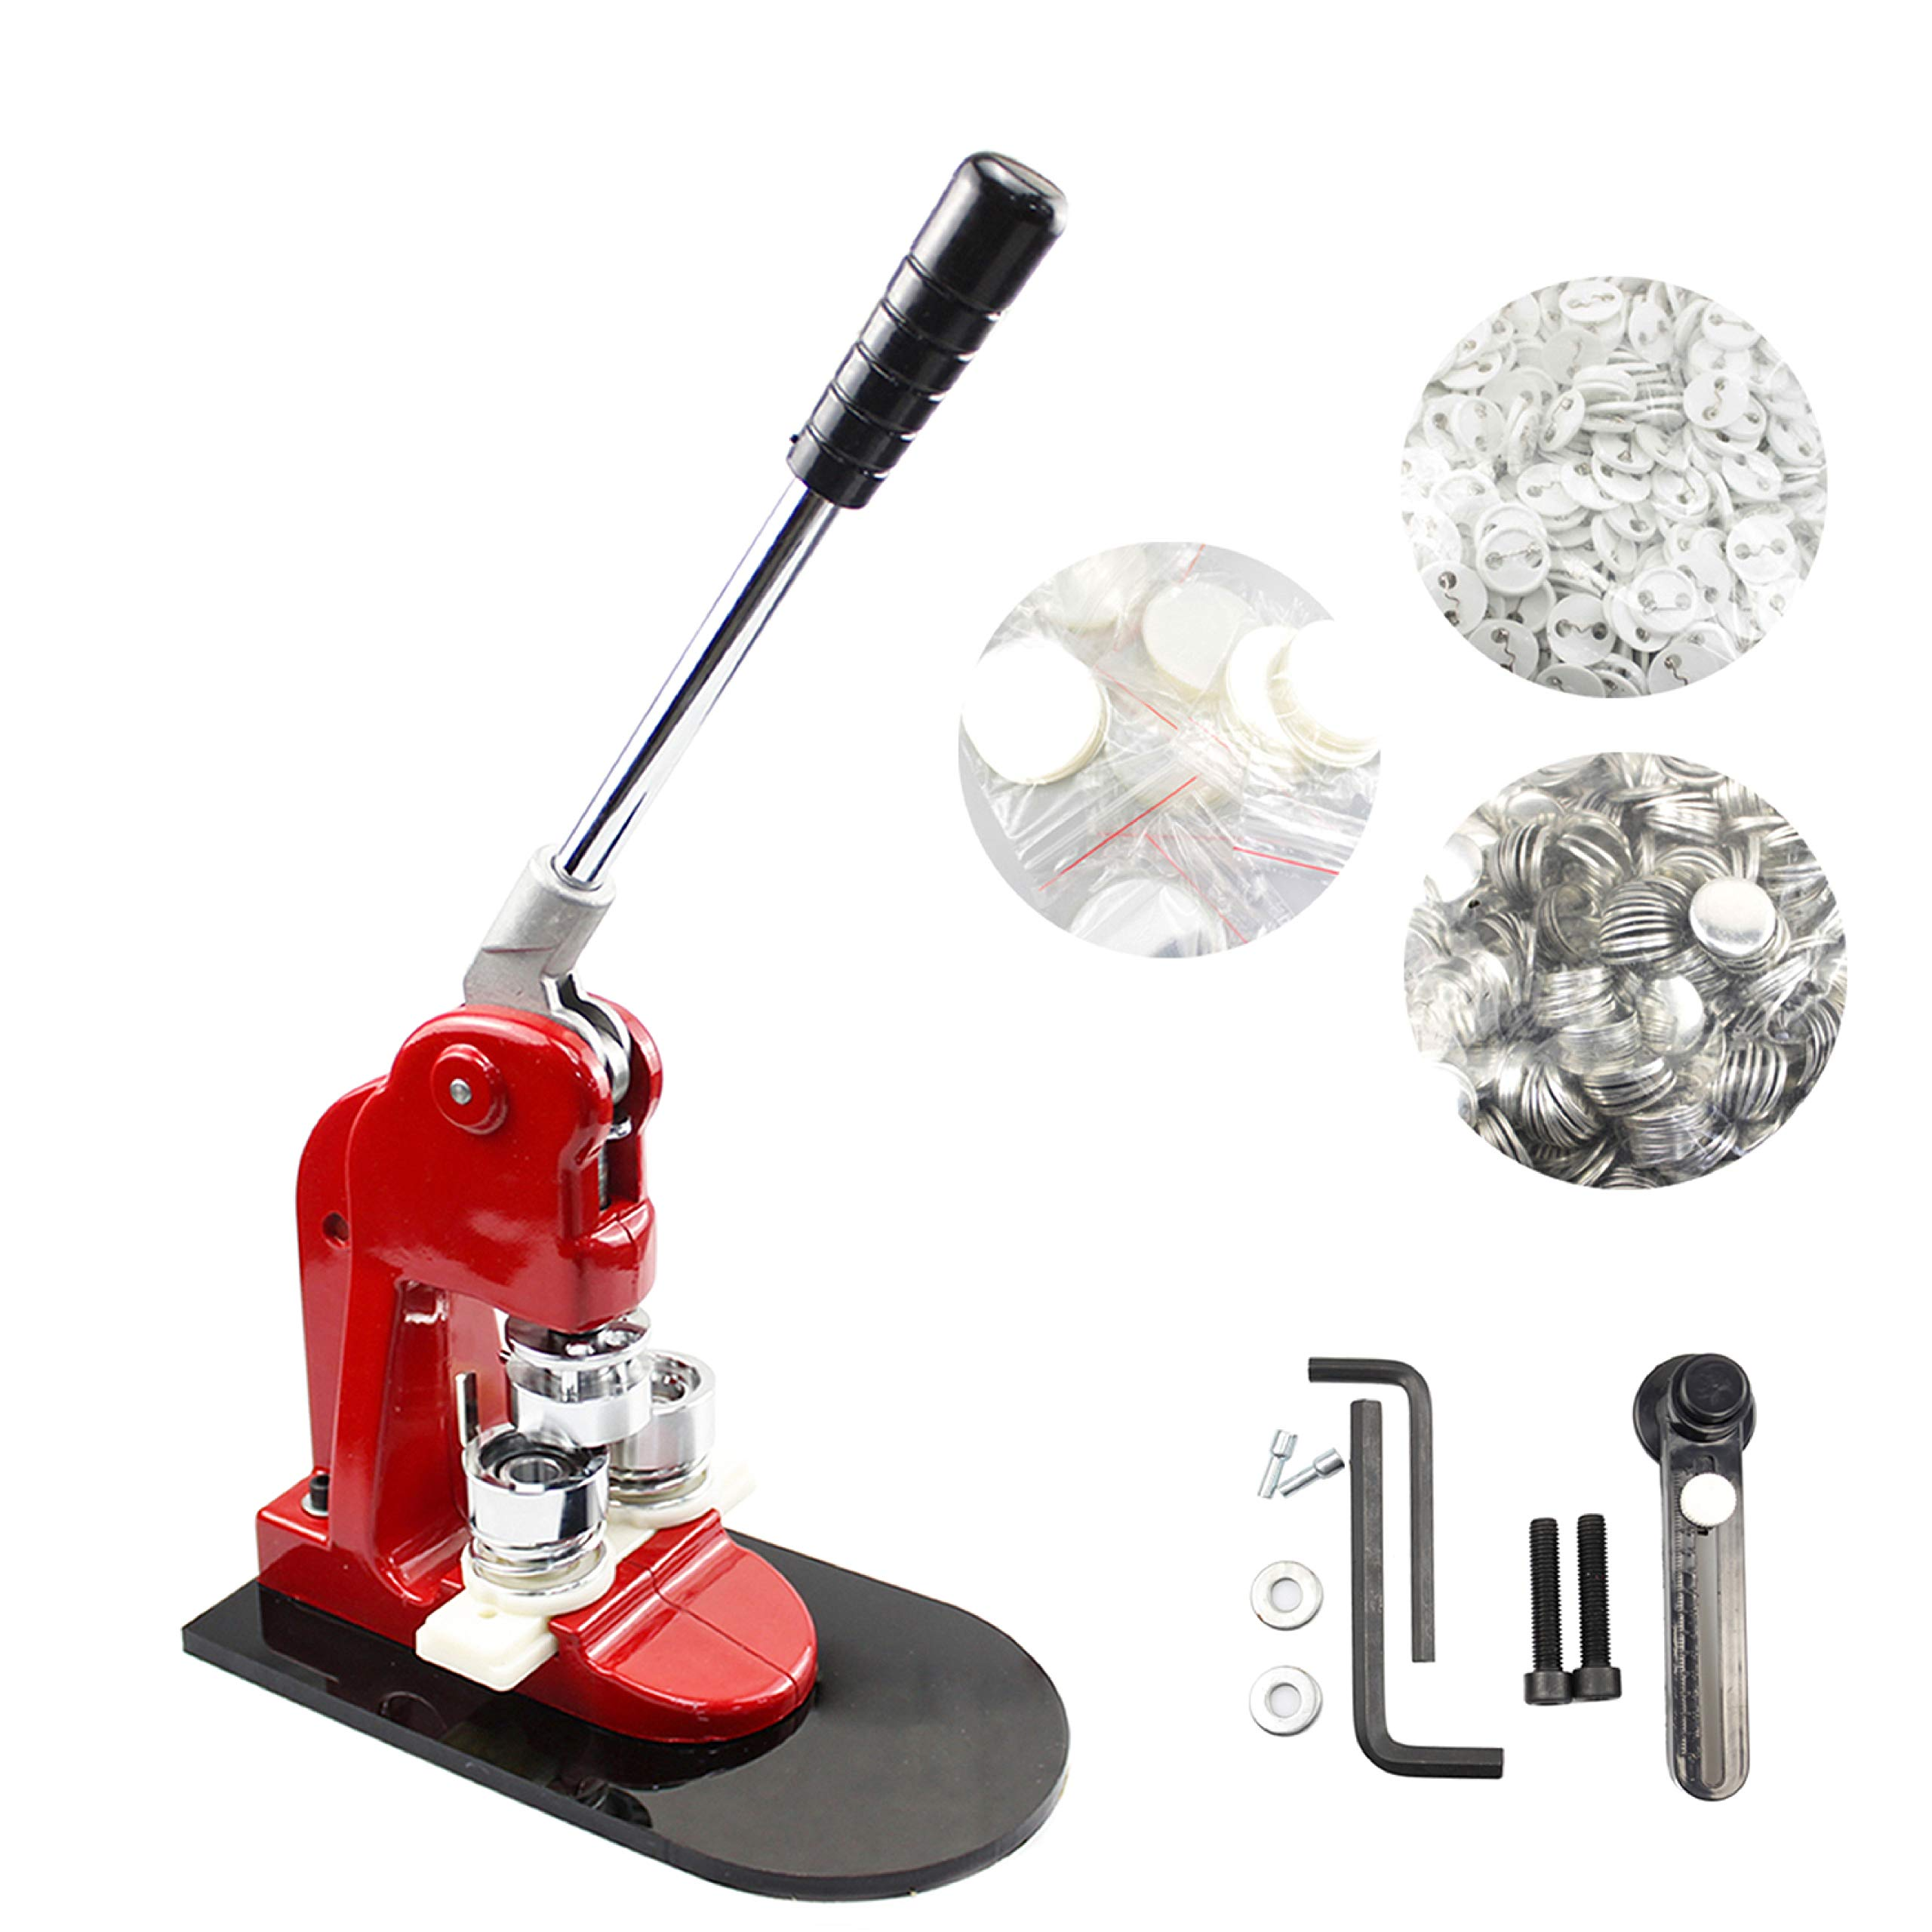 1'' 25mm Button Badge Maker Punch Press Machine with 1000 Sets of Button Parts and Circle Cutter for DIY by multool